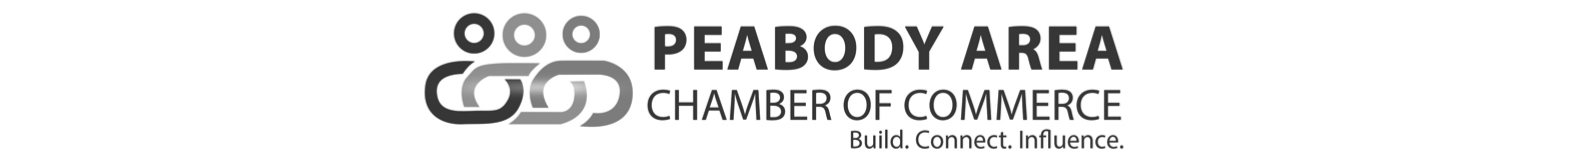 peabody-chamber-commerce-web.png